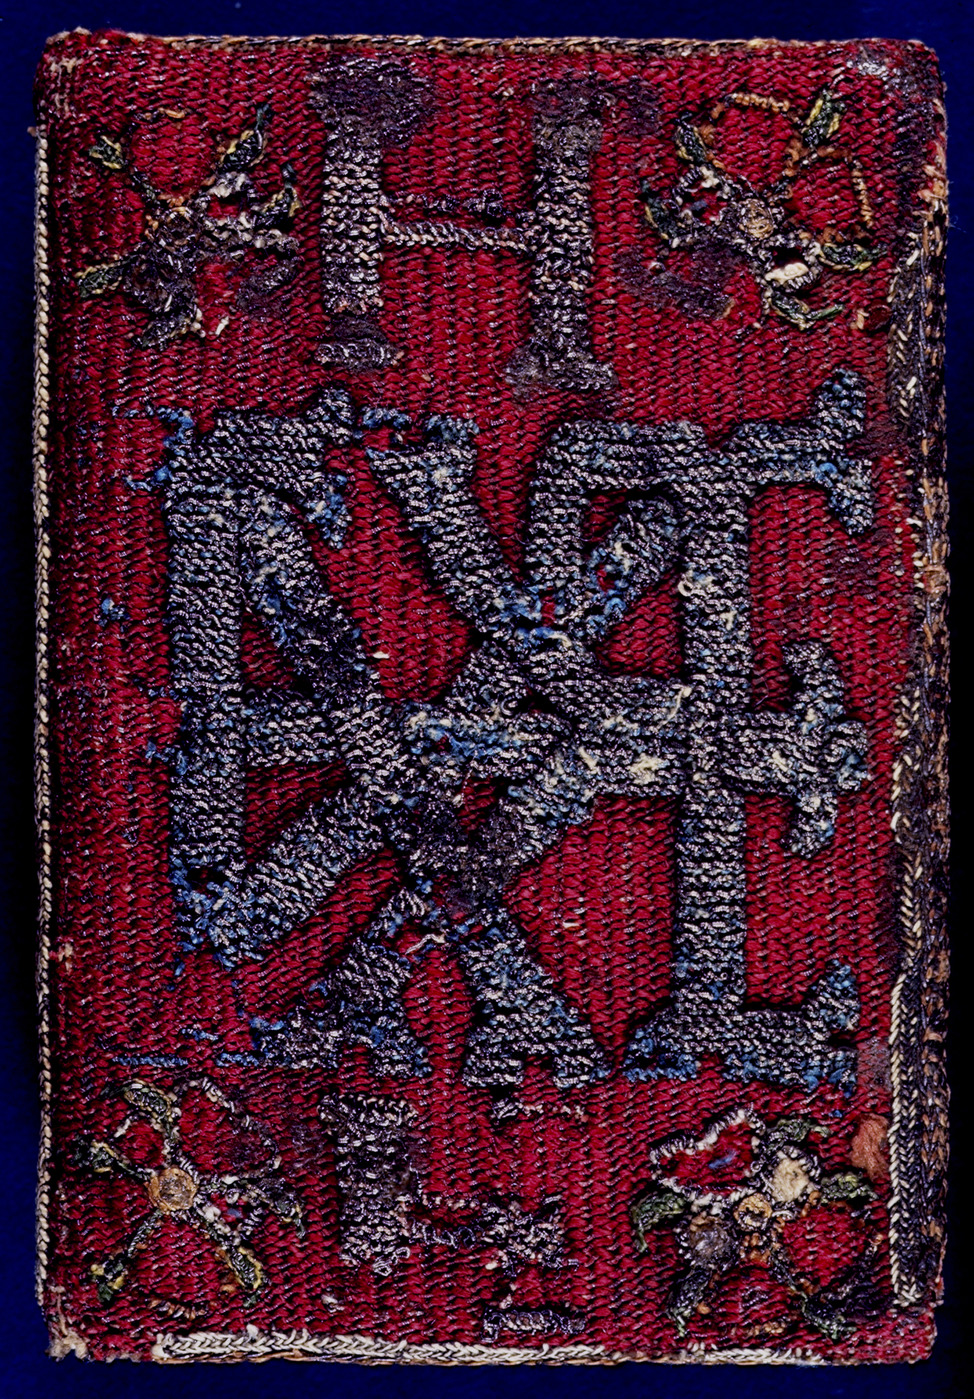 Prayers of Queen Katherine Parr by the Princess Elizabeth,1545